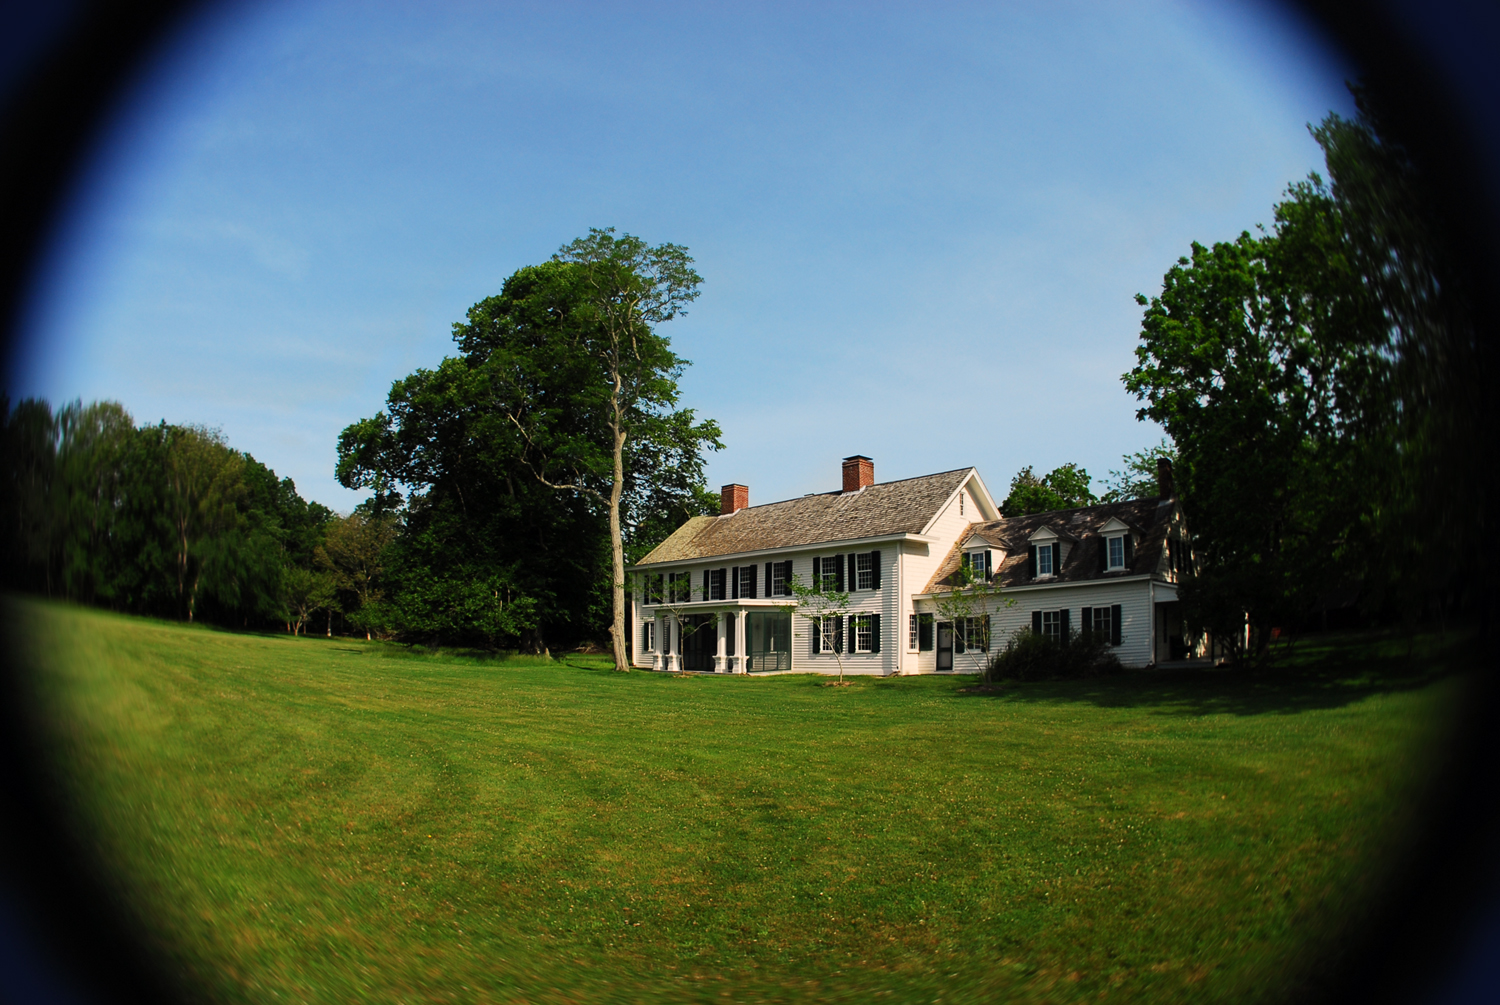 William Floyd Estate through the lens of artist Xiomaro